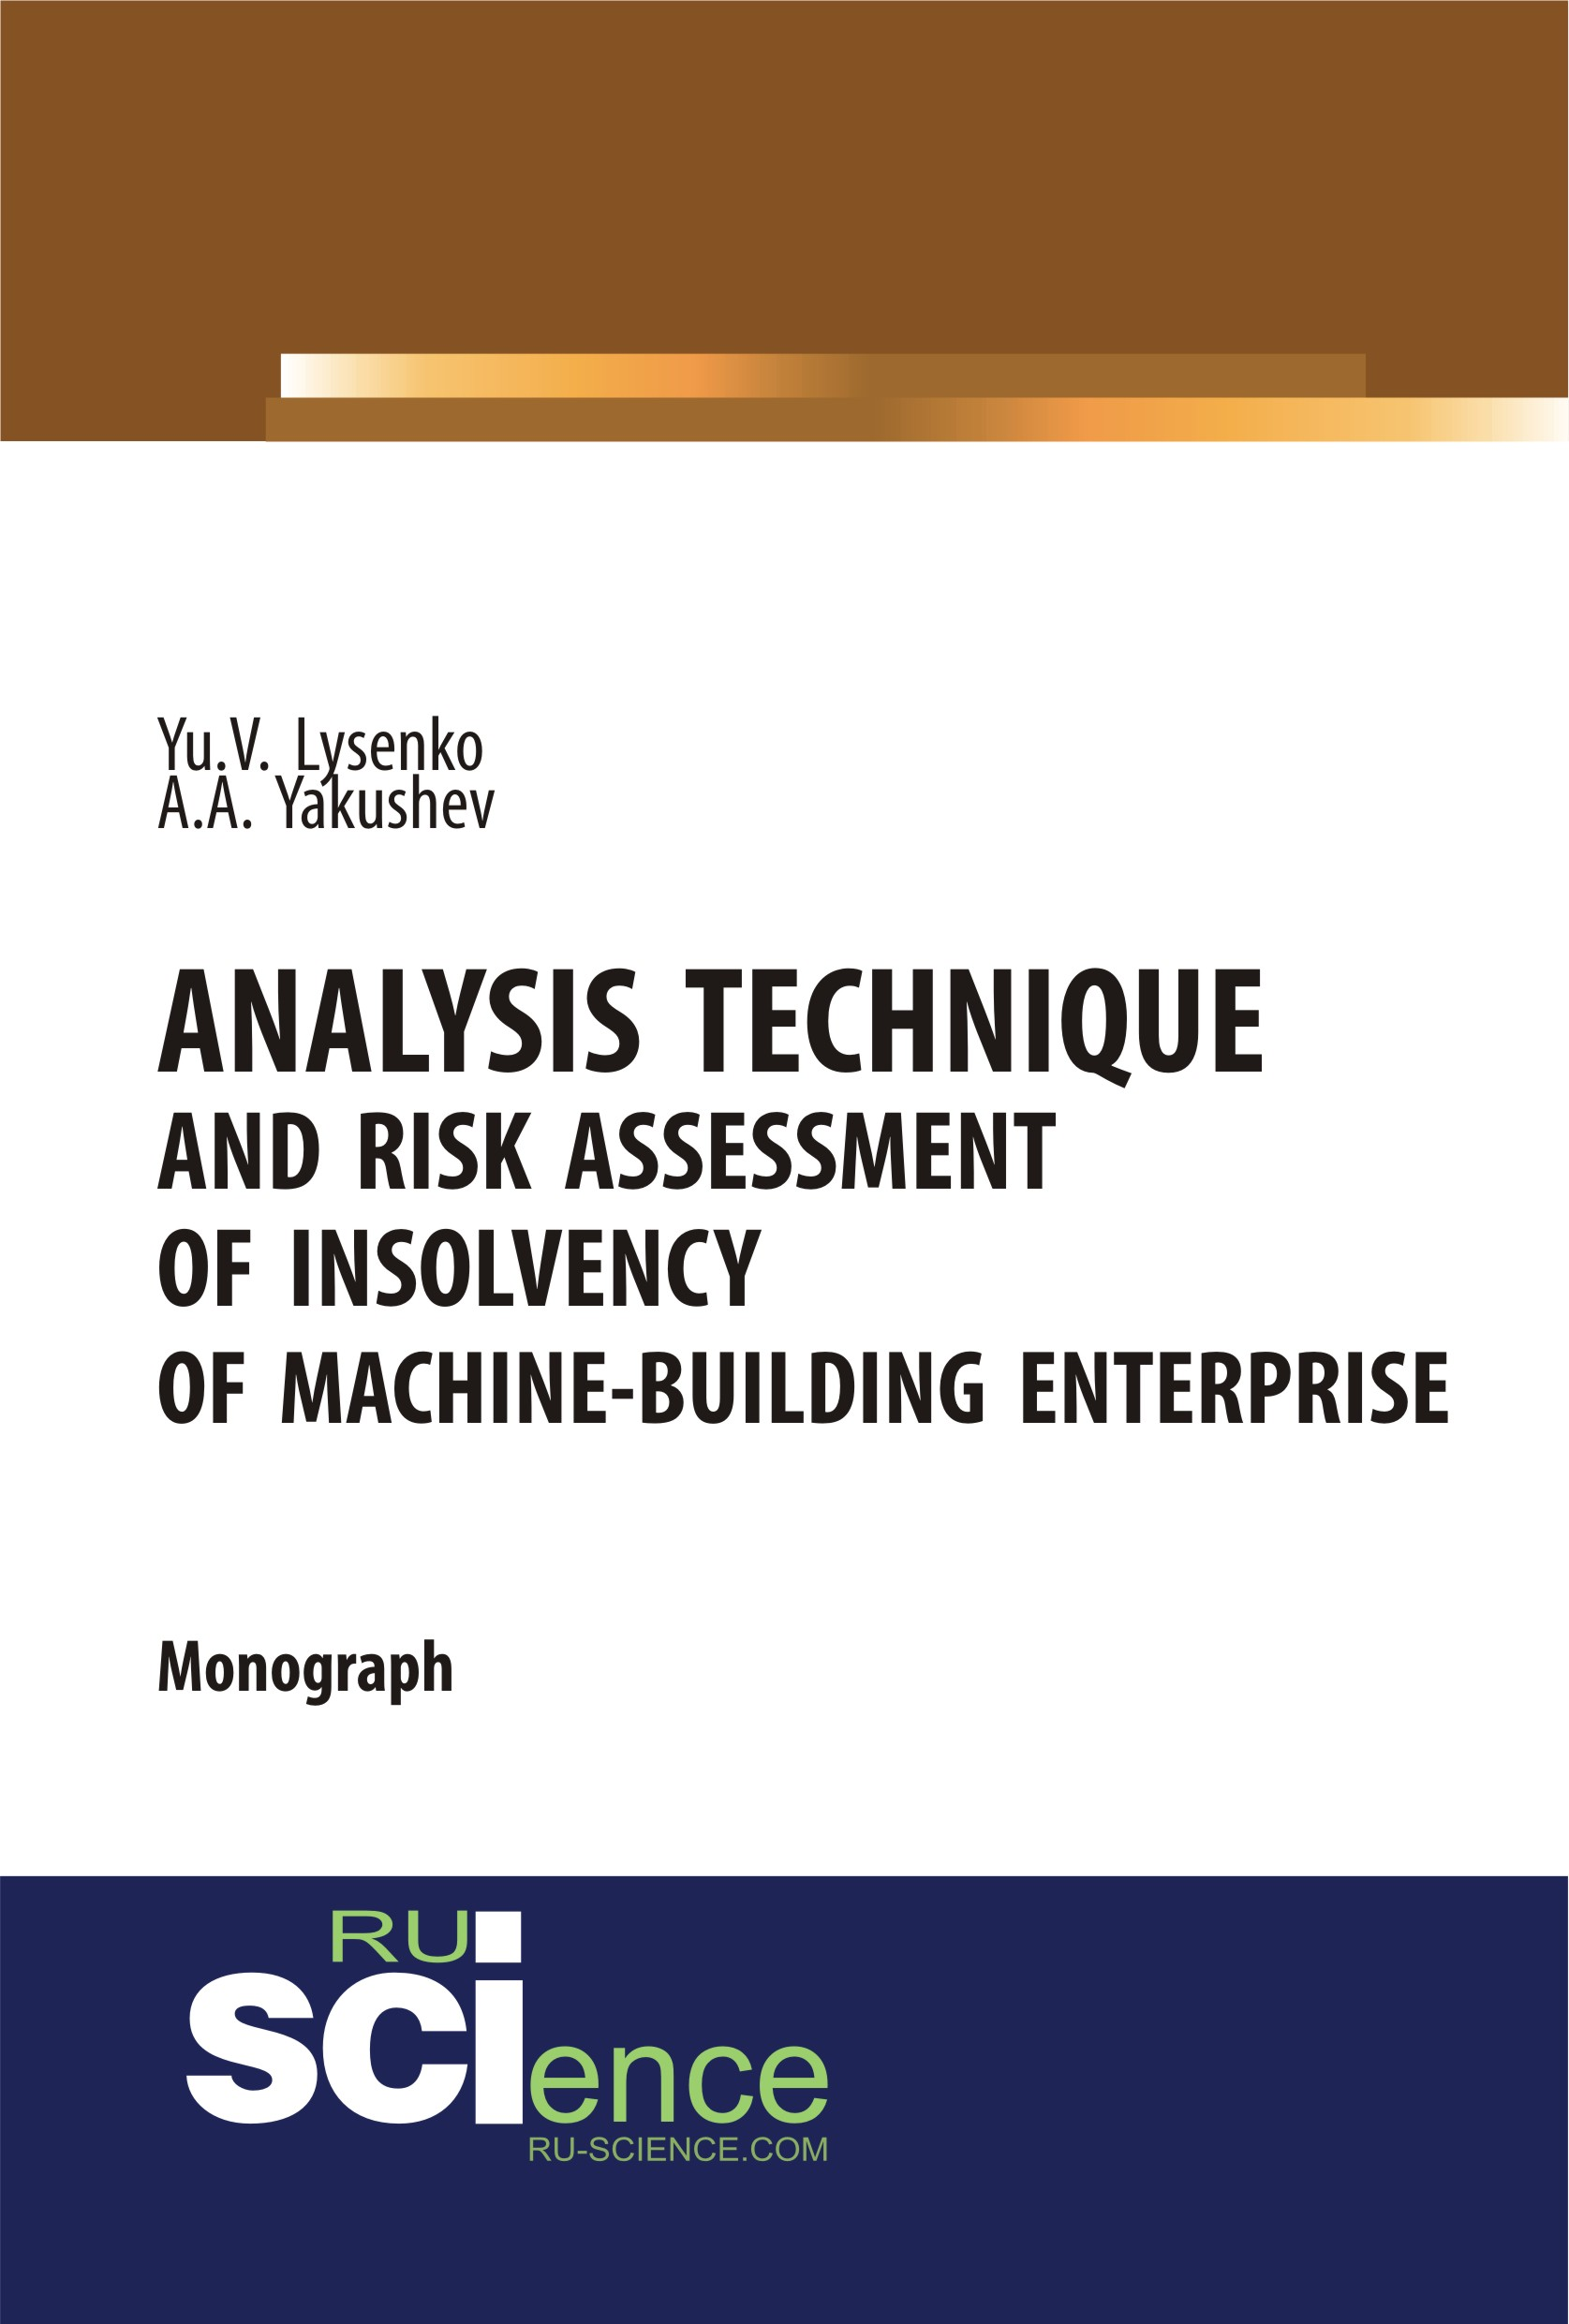 Ю. В. Лысенко Analysis technique and risk assessment of insolvency of machine-building enterprise ghetnet metiku mebrahtu woldu assessment of principles and practices of good governance in tax administration